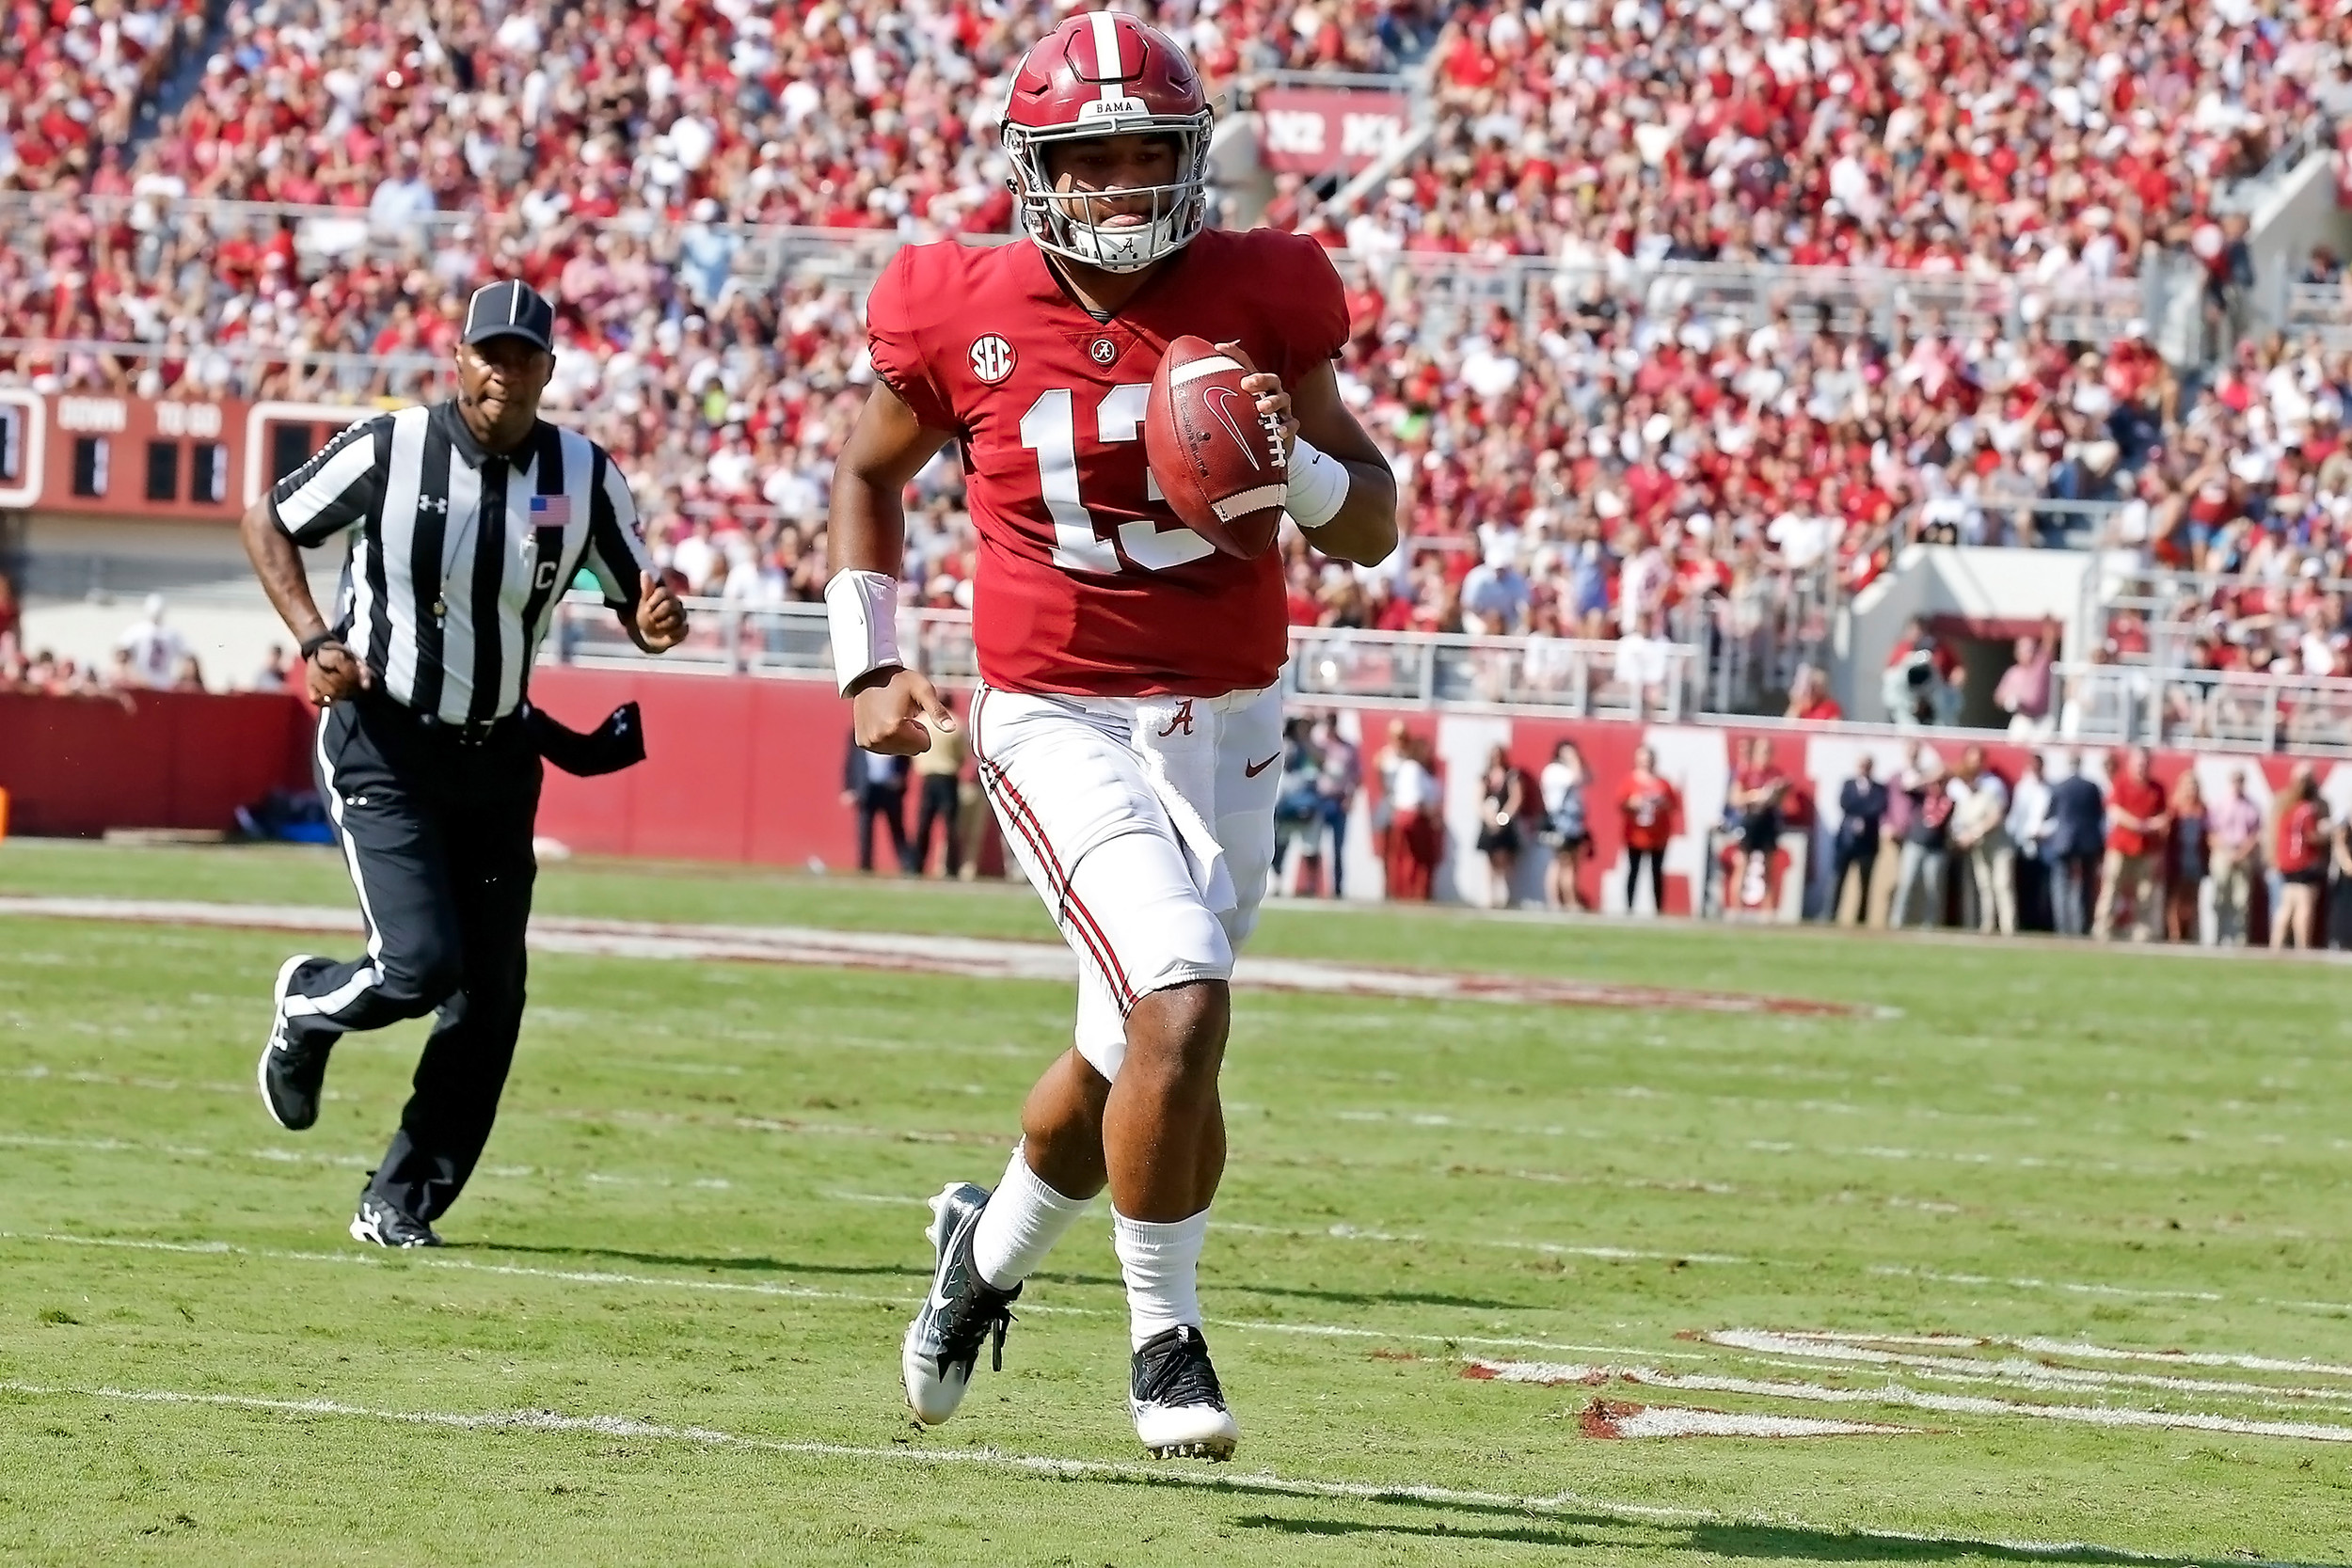 Alabama Crimson Tide quarterback Tua Tagovailoa (13) rushes for a touchdown during the game between the Texas A&M Aggies and the University of Alabama Crimson Tide at Bryant-Denny Stadium.  Jason Clark / Daily Mountain Eagle